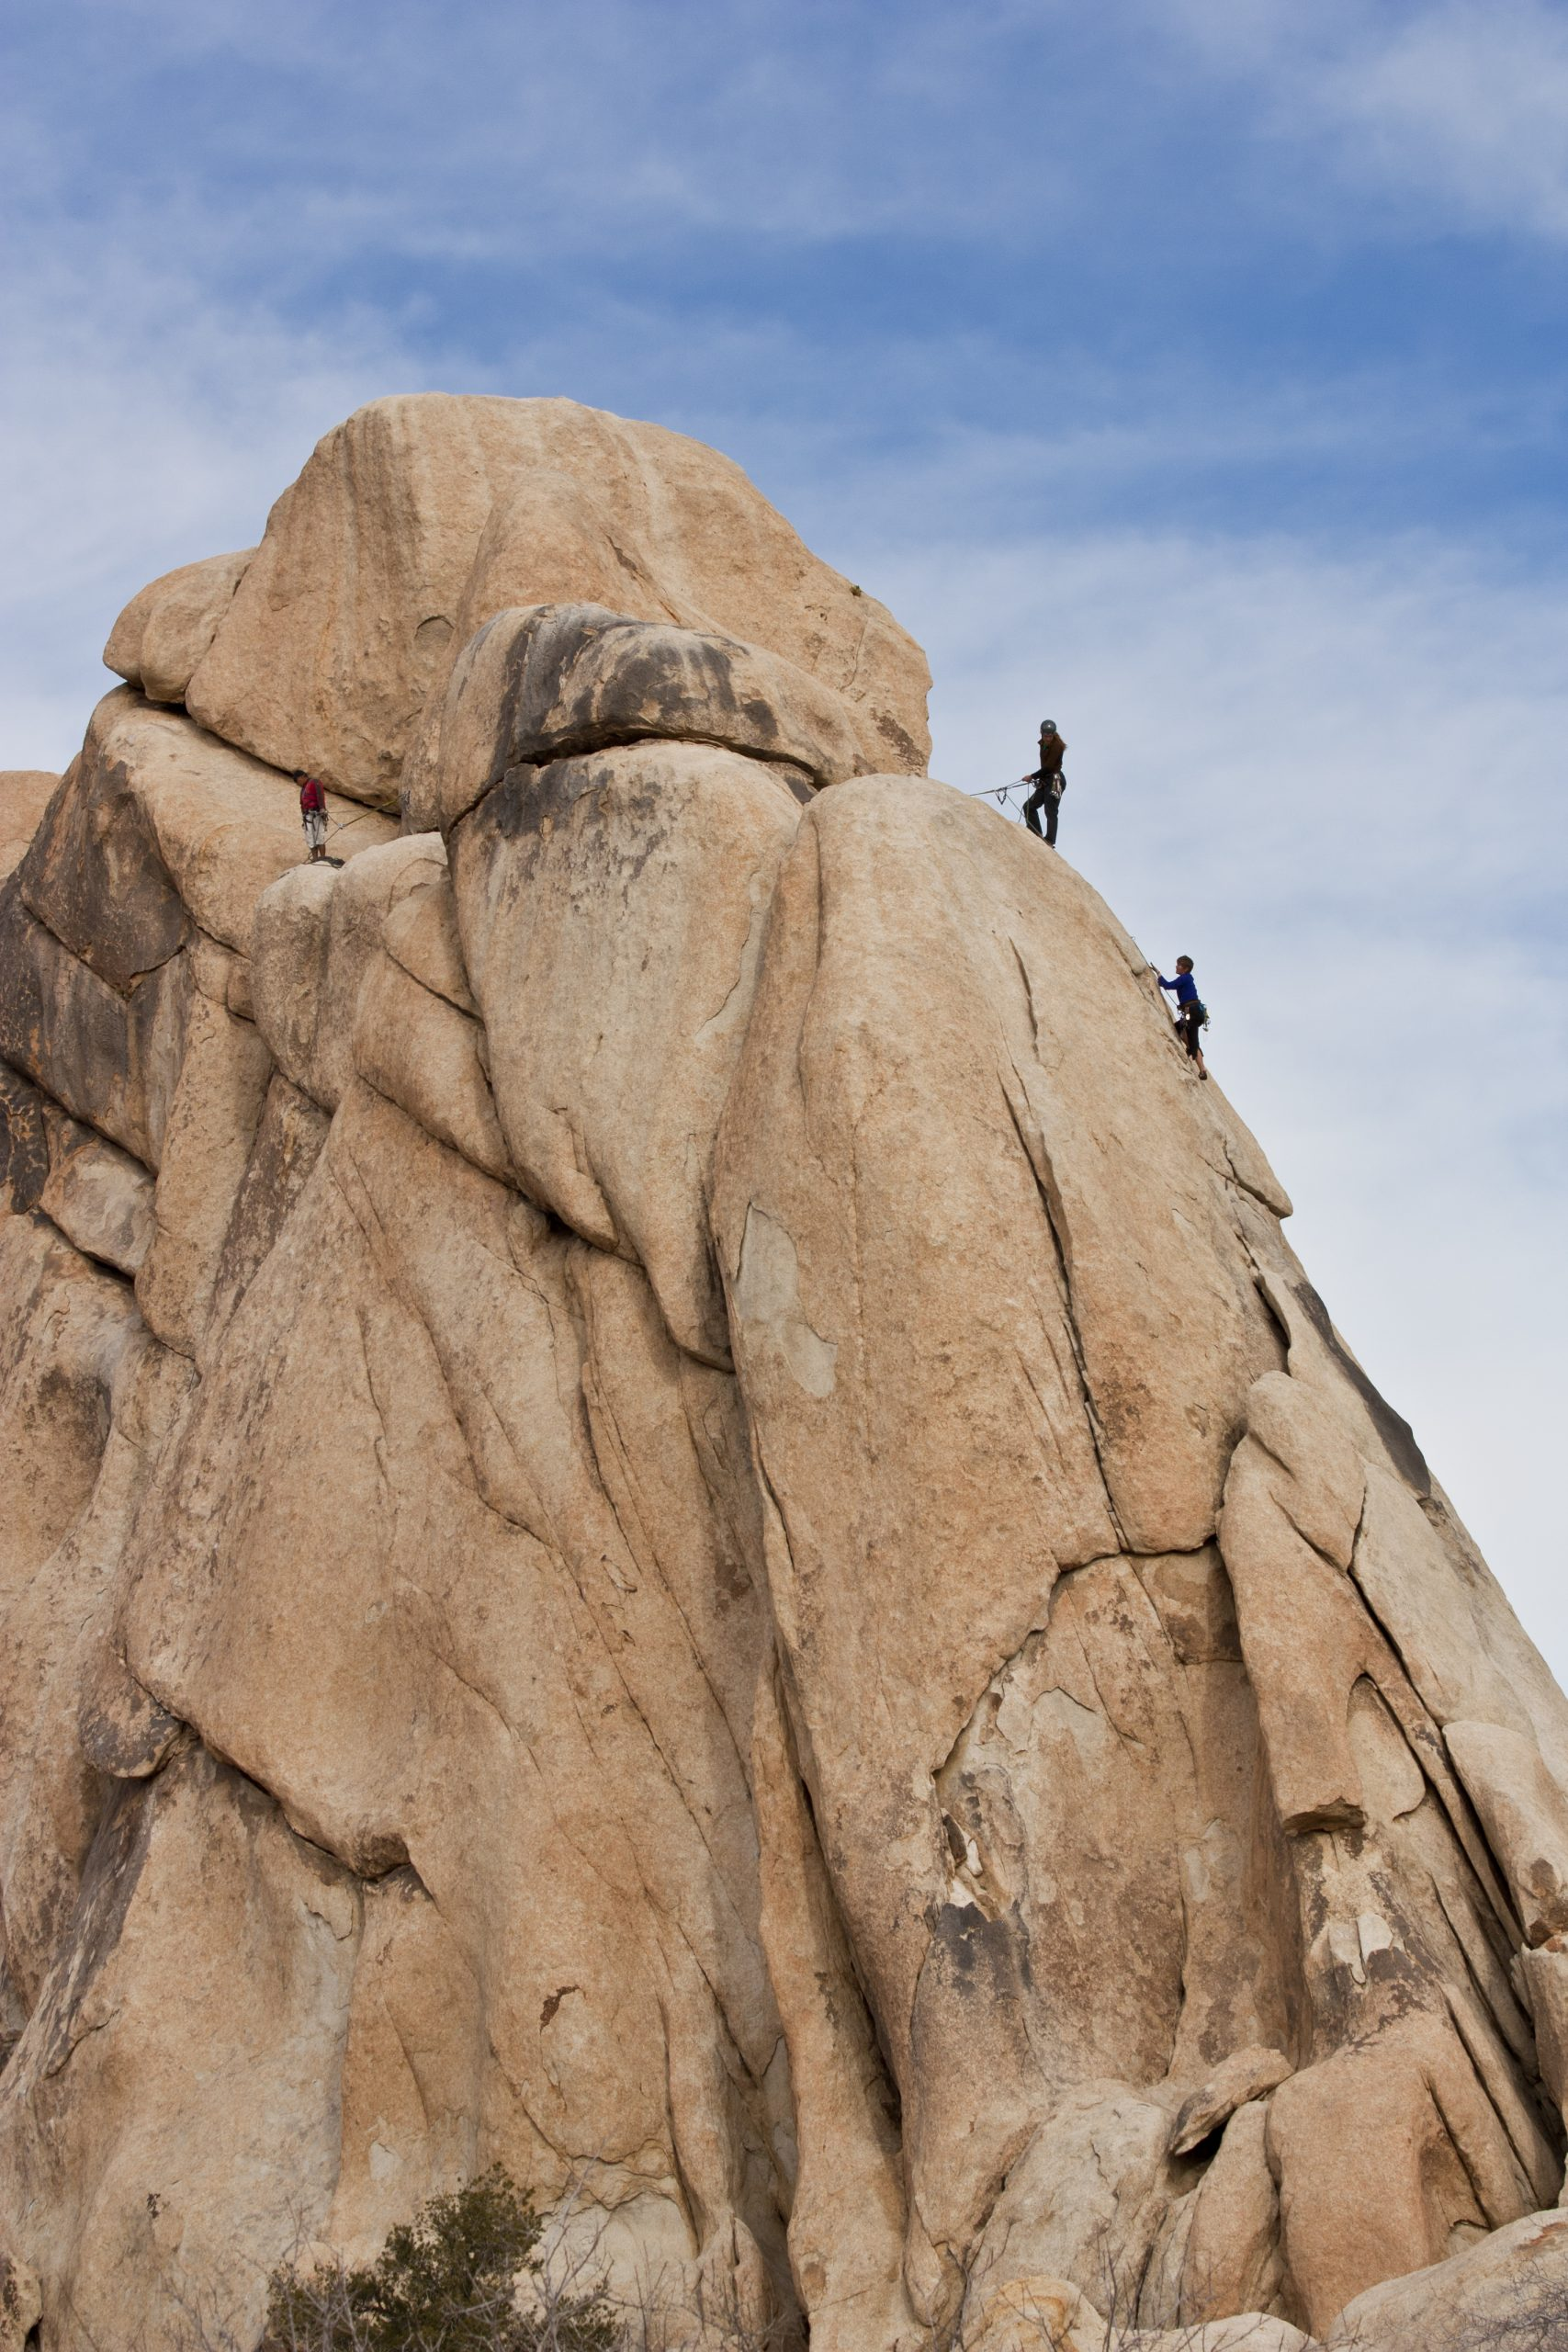 Climbers in Joshua Tree National Park.